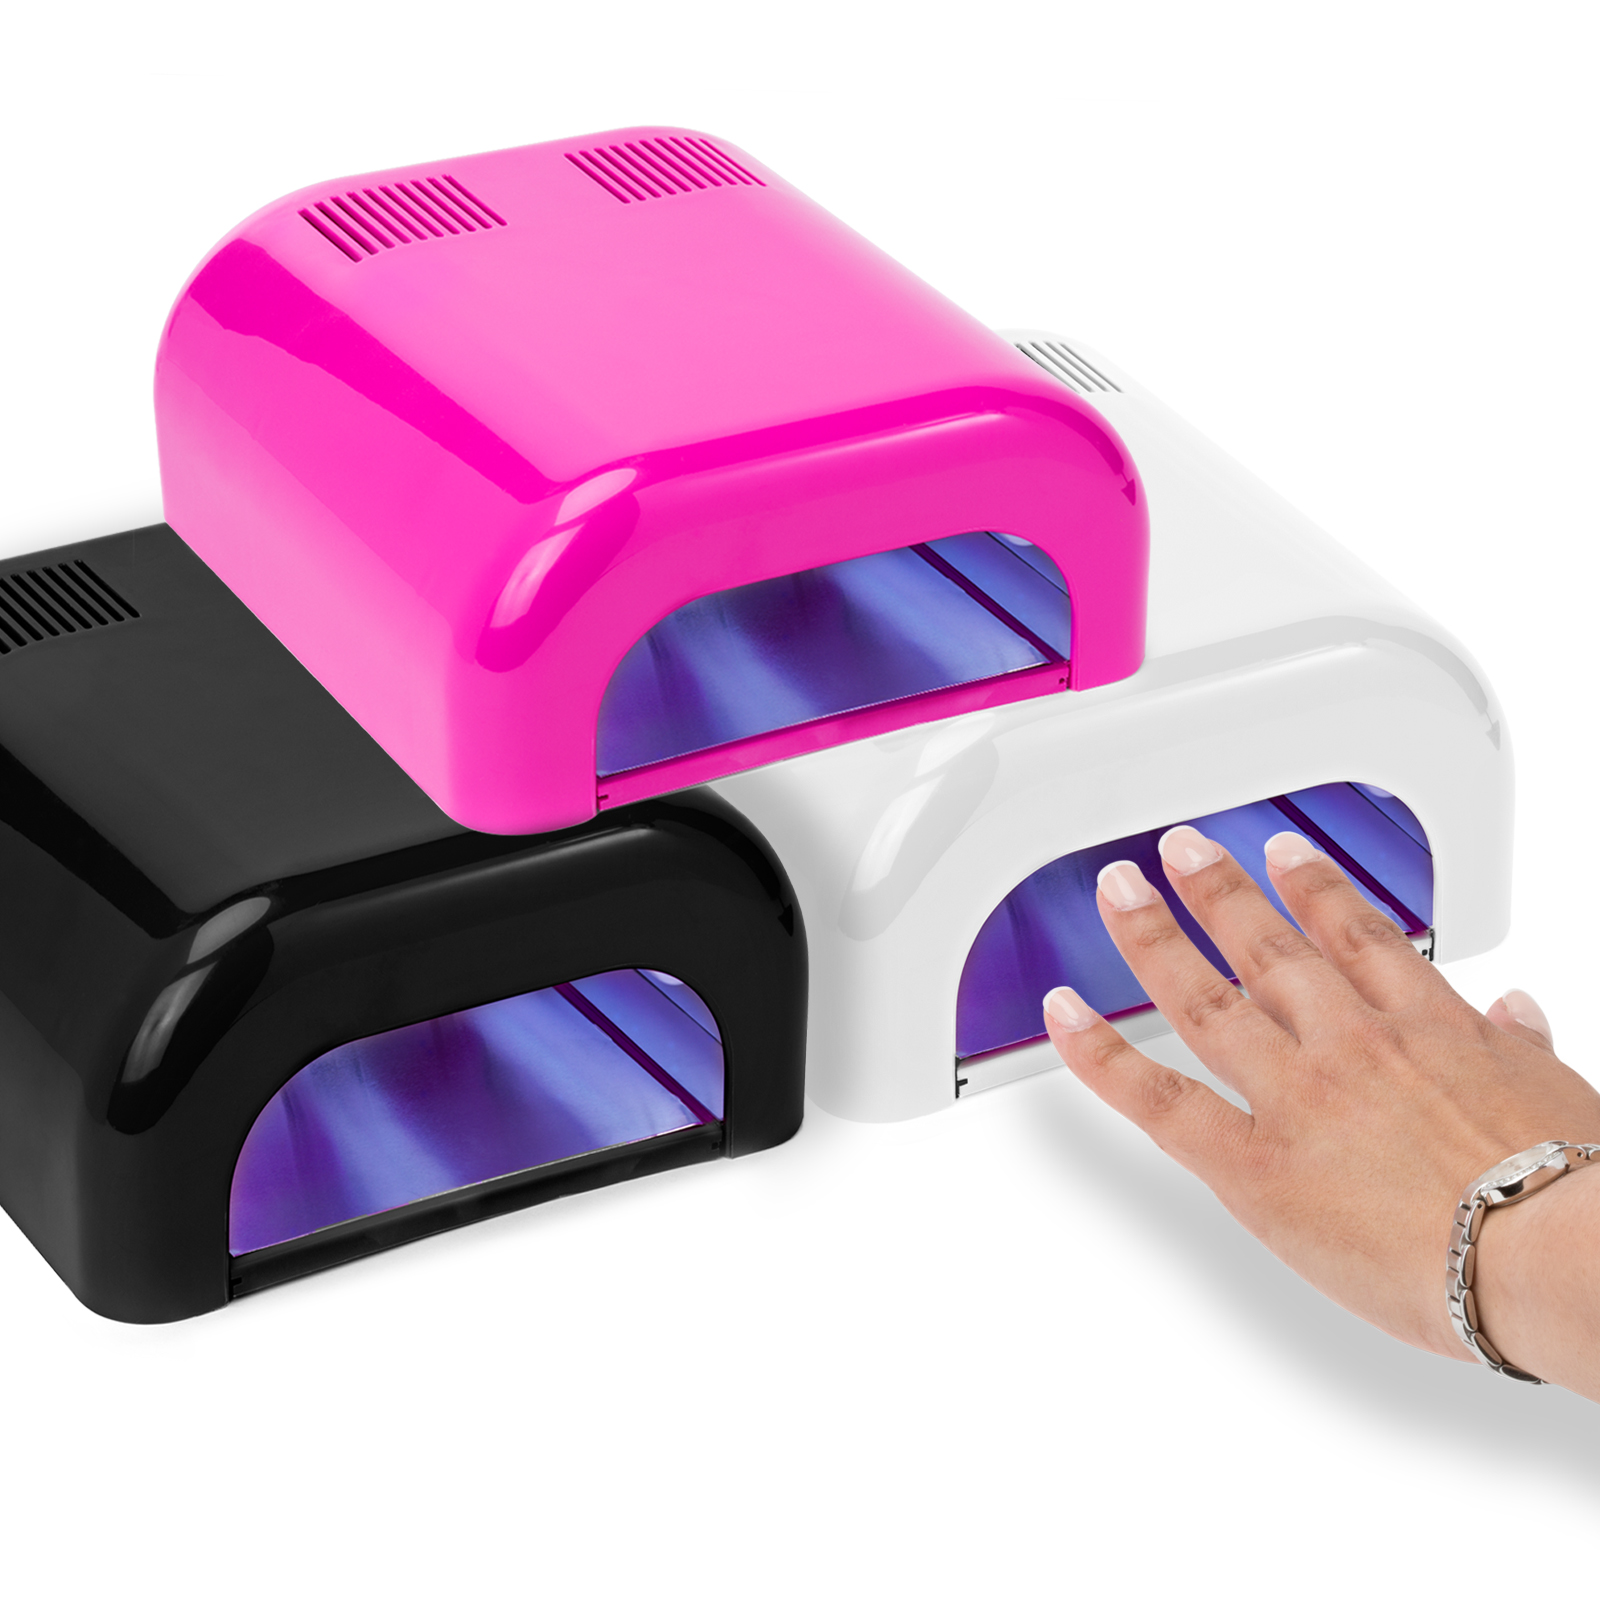 Salon Sundry Salon Sundry Uv Nail Dryer 36 Watt Professional Salon Gel Nail Polish Curing Lamp With Built In Timer Multiple Colors Available Walmart Com Walmart Com